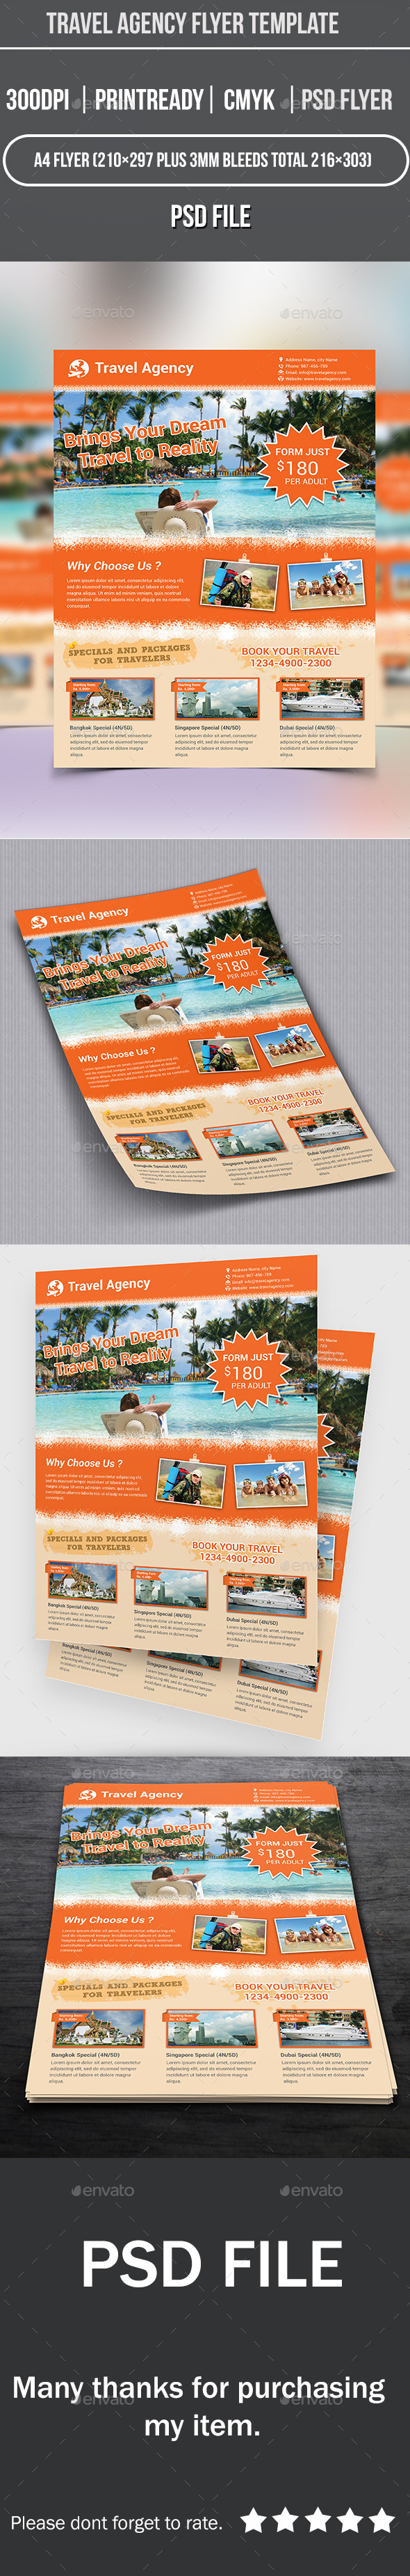 GraphicRiver Travel Agency Flyer Template 9199307